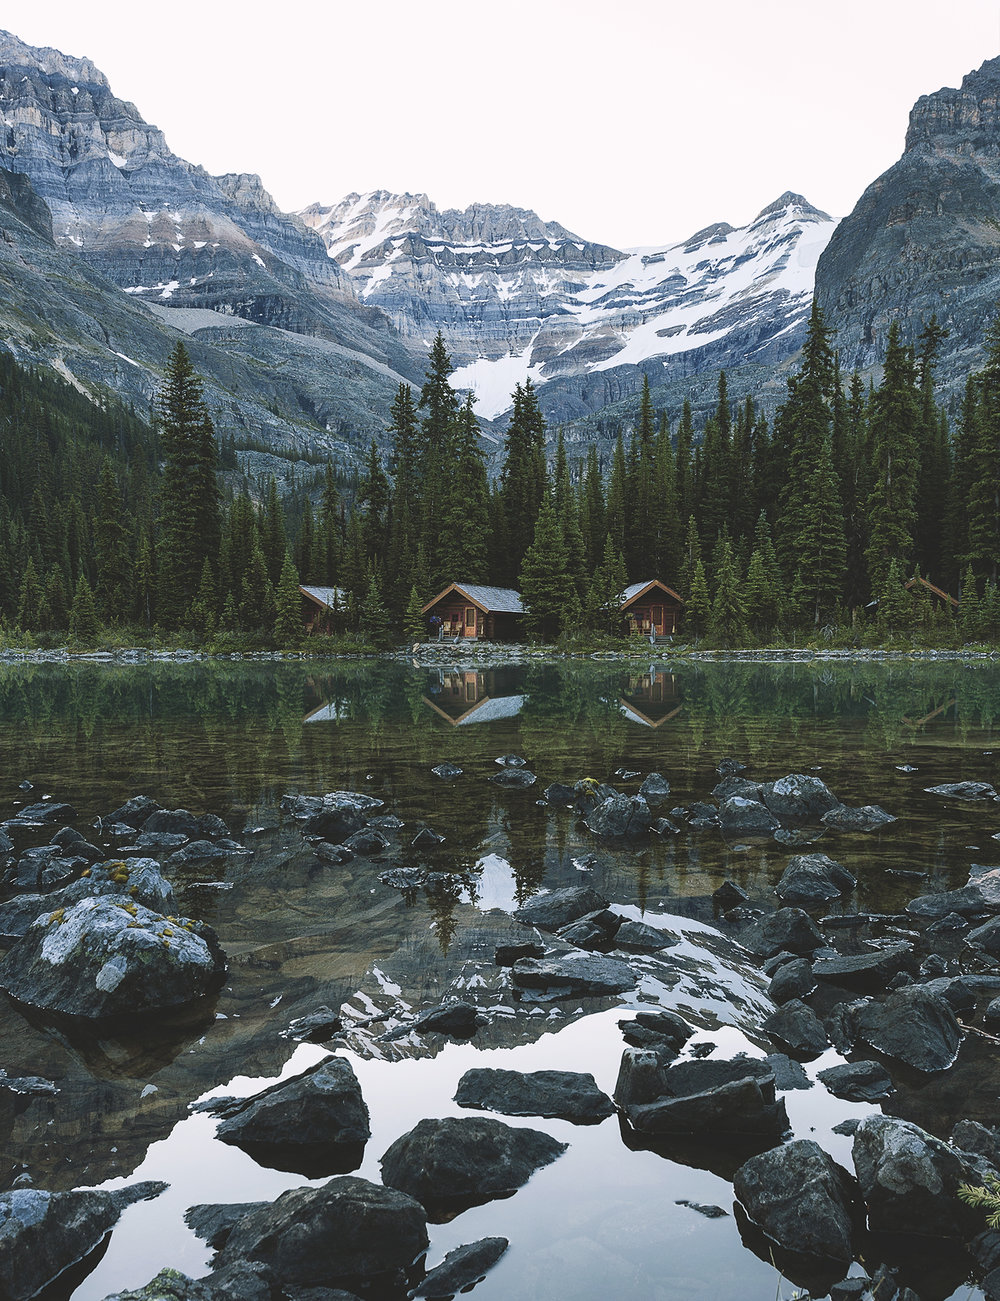 The Lake O'Hara Lodges, you pay a premium for such a spot!